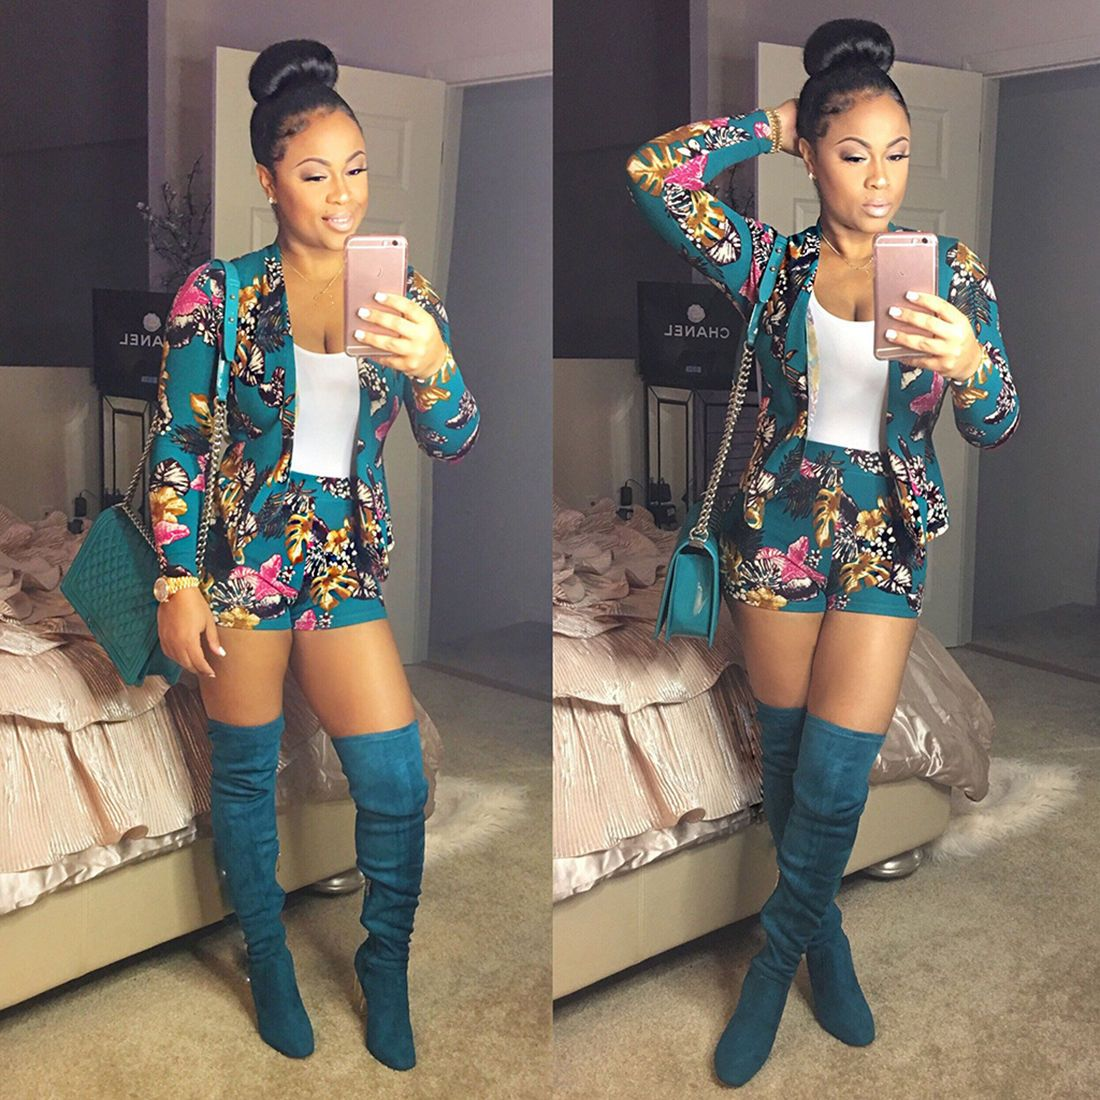 f032b98aa4a ... thigh high boots! Celebrity Summer Women Blazer Set Floral Suit With  Print High Waist Shorts Ht